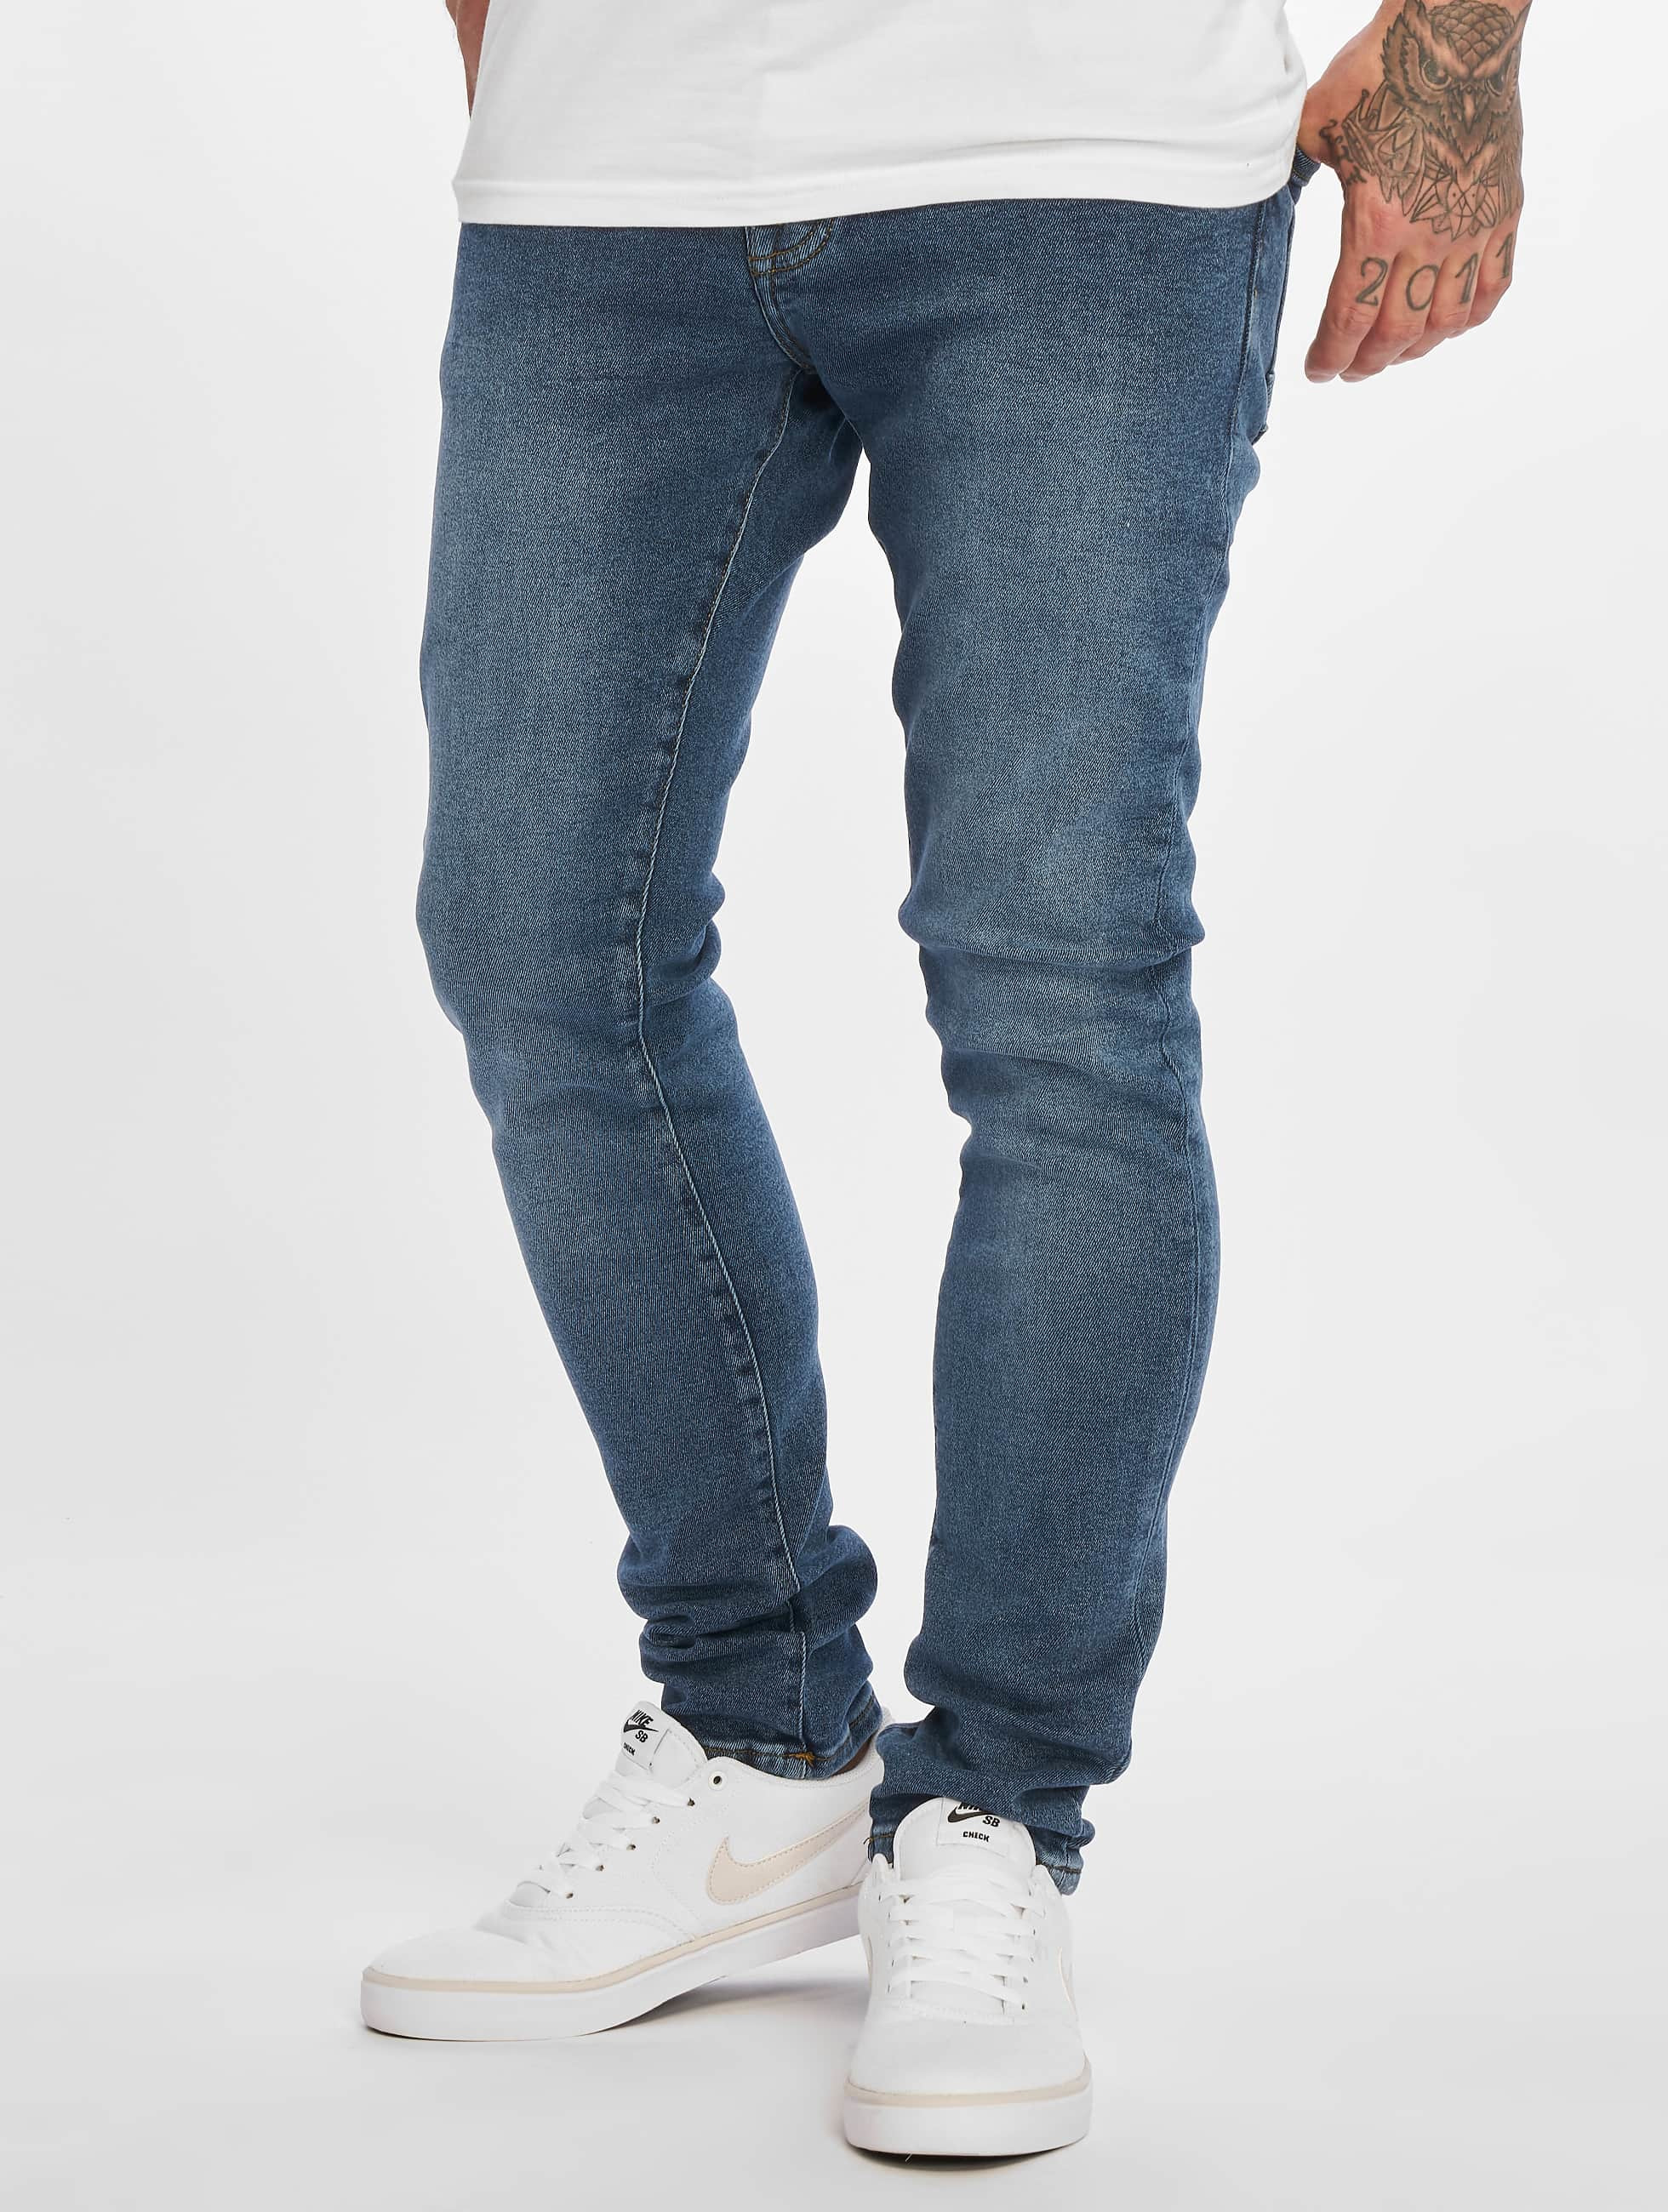 DEF / Slim Fit Jeans Phil in blue W 32 L 32